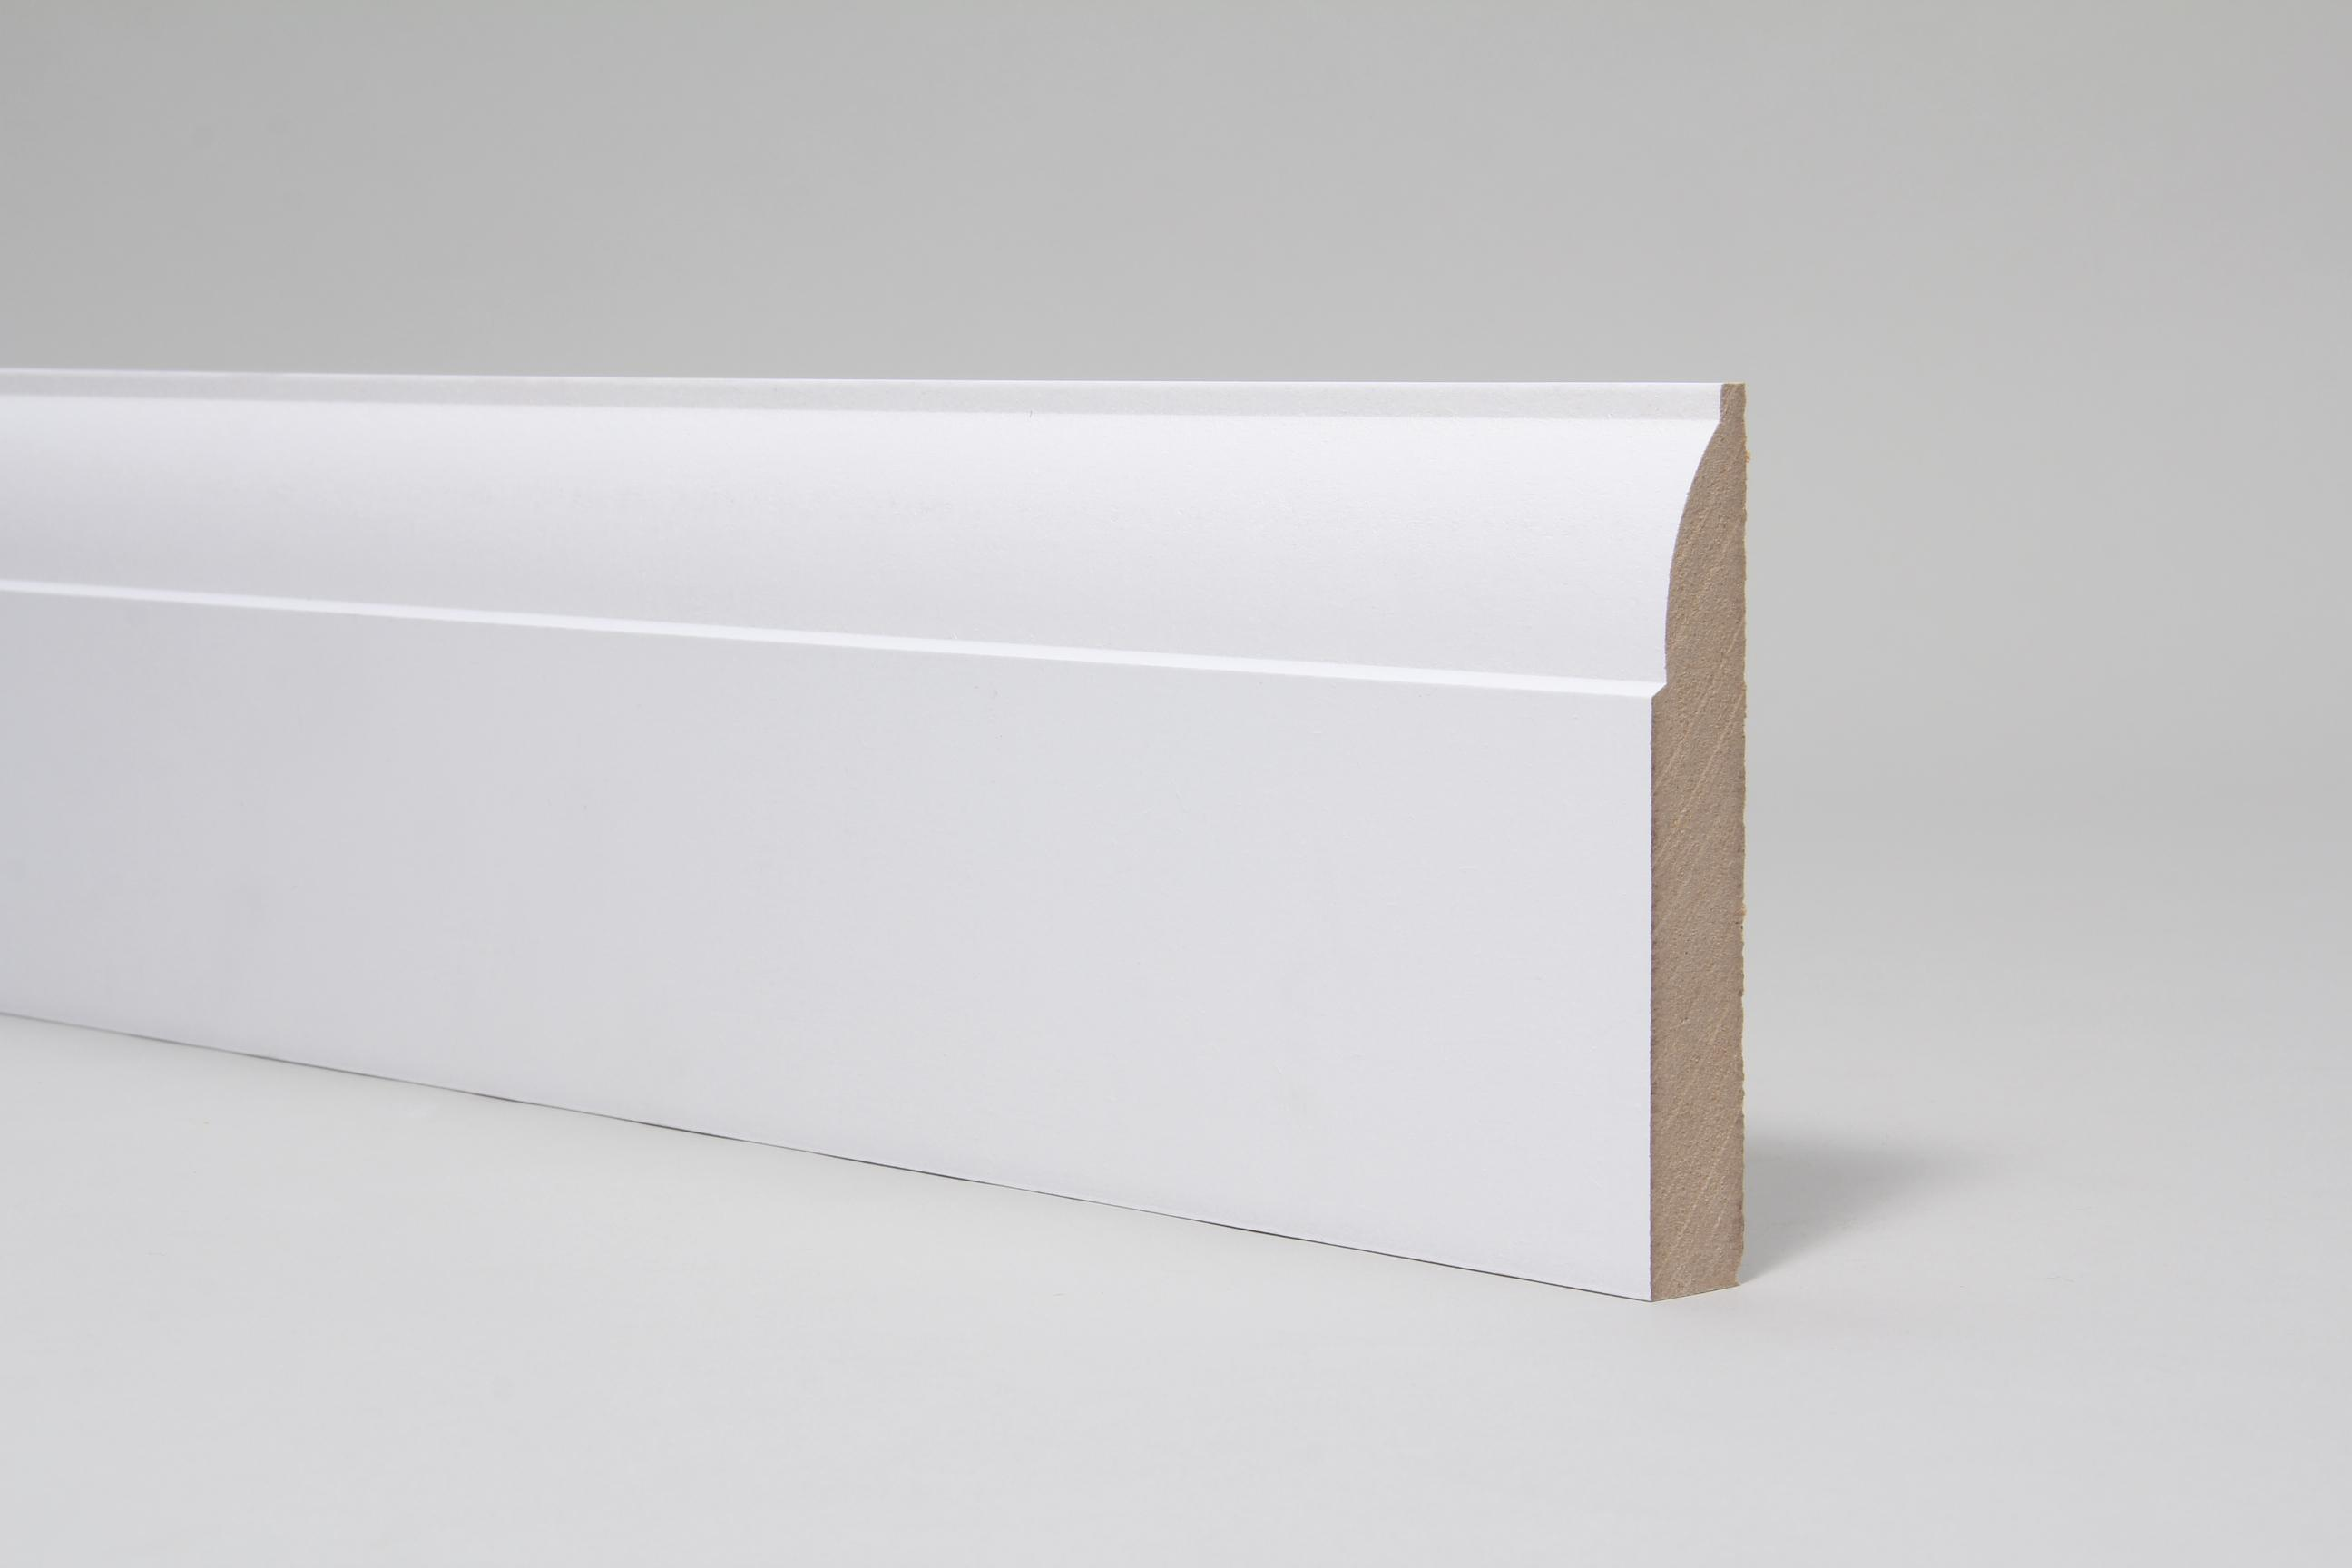 Ovolo 18mm x 119mm x 4.4 Mtr Primed